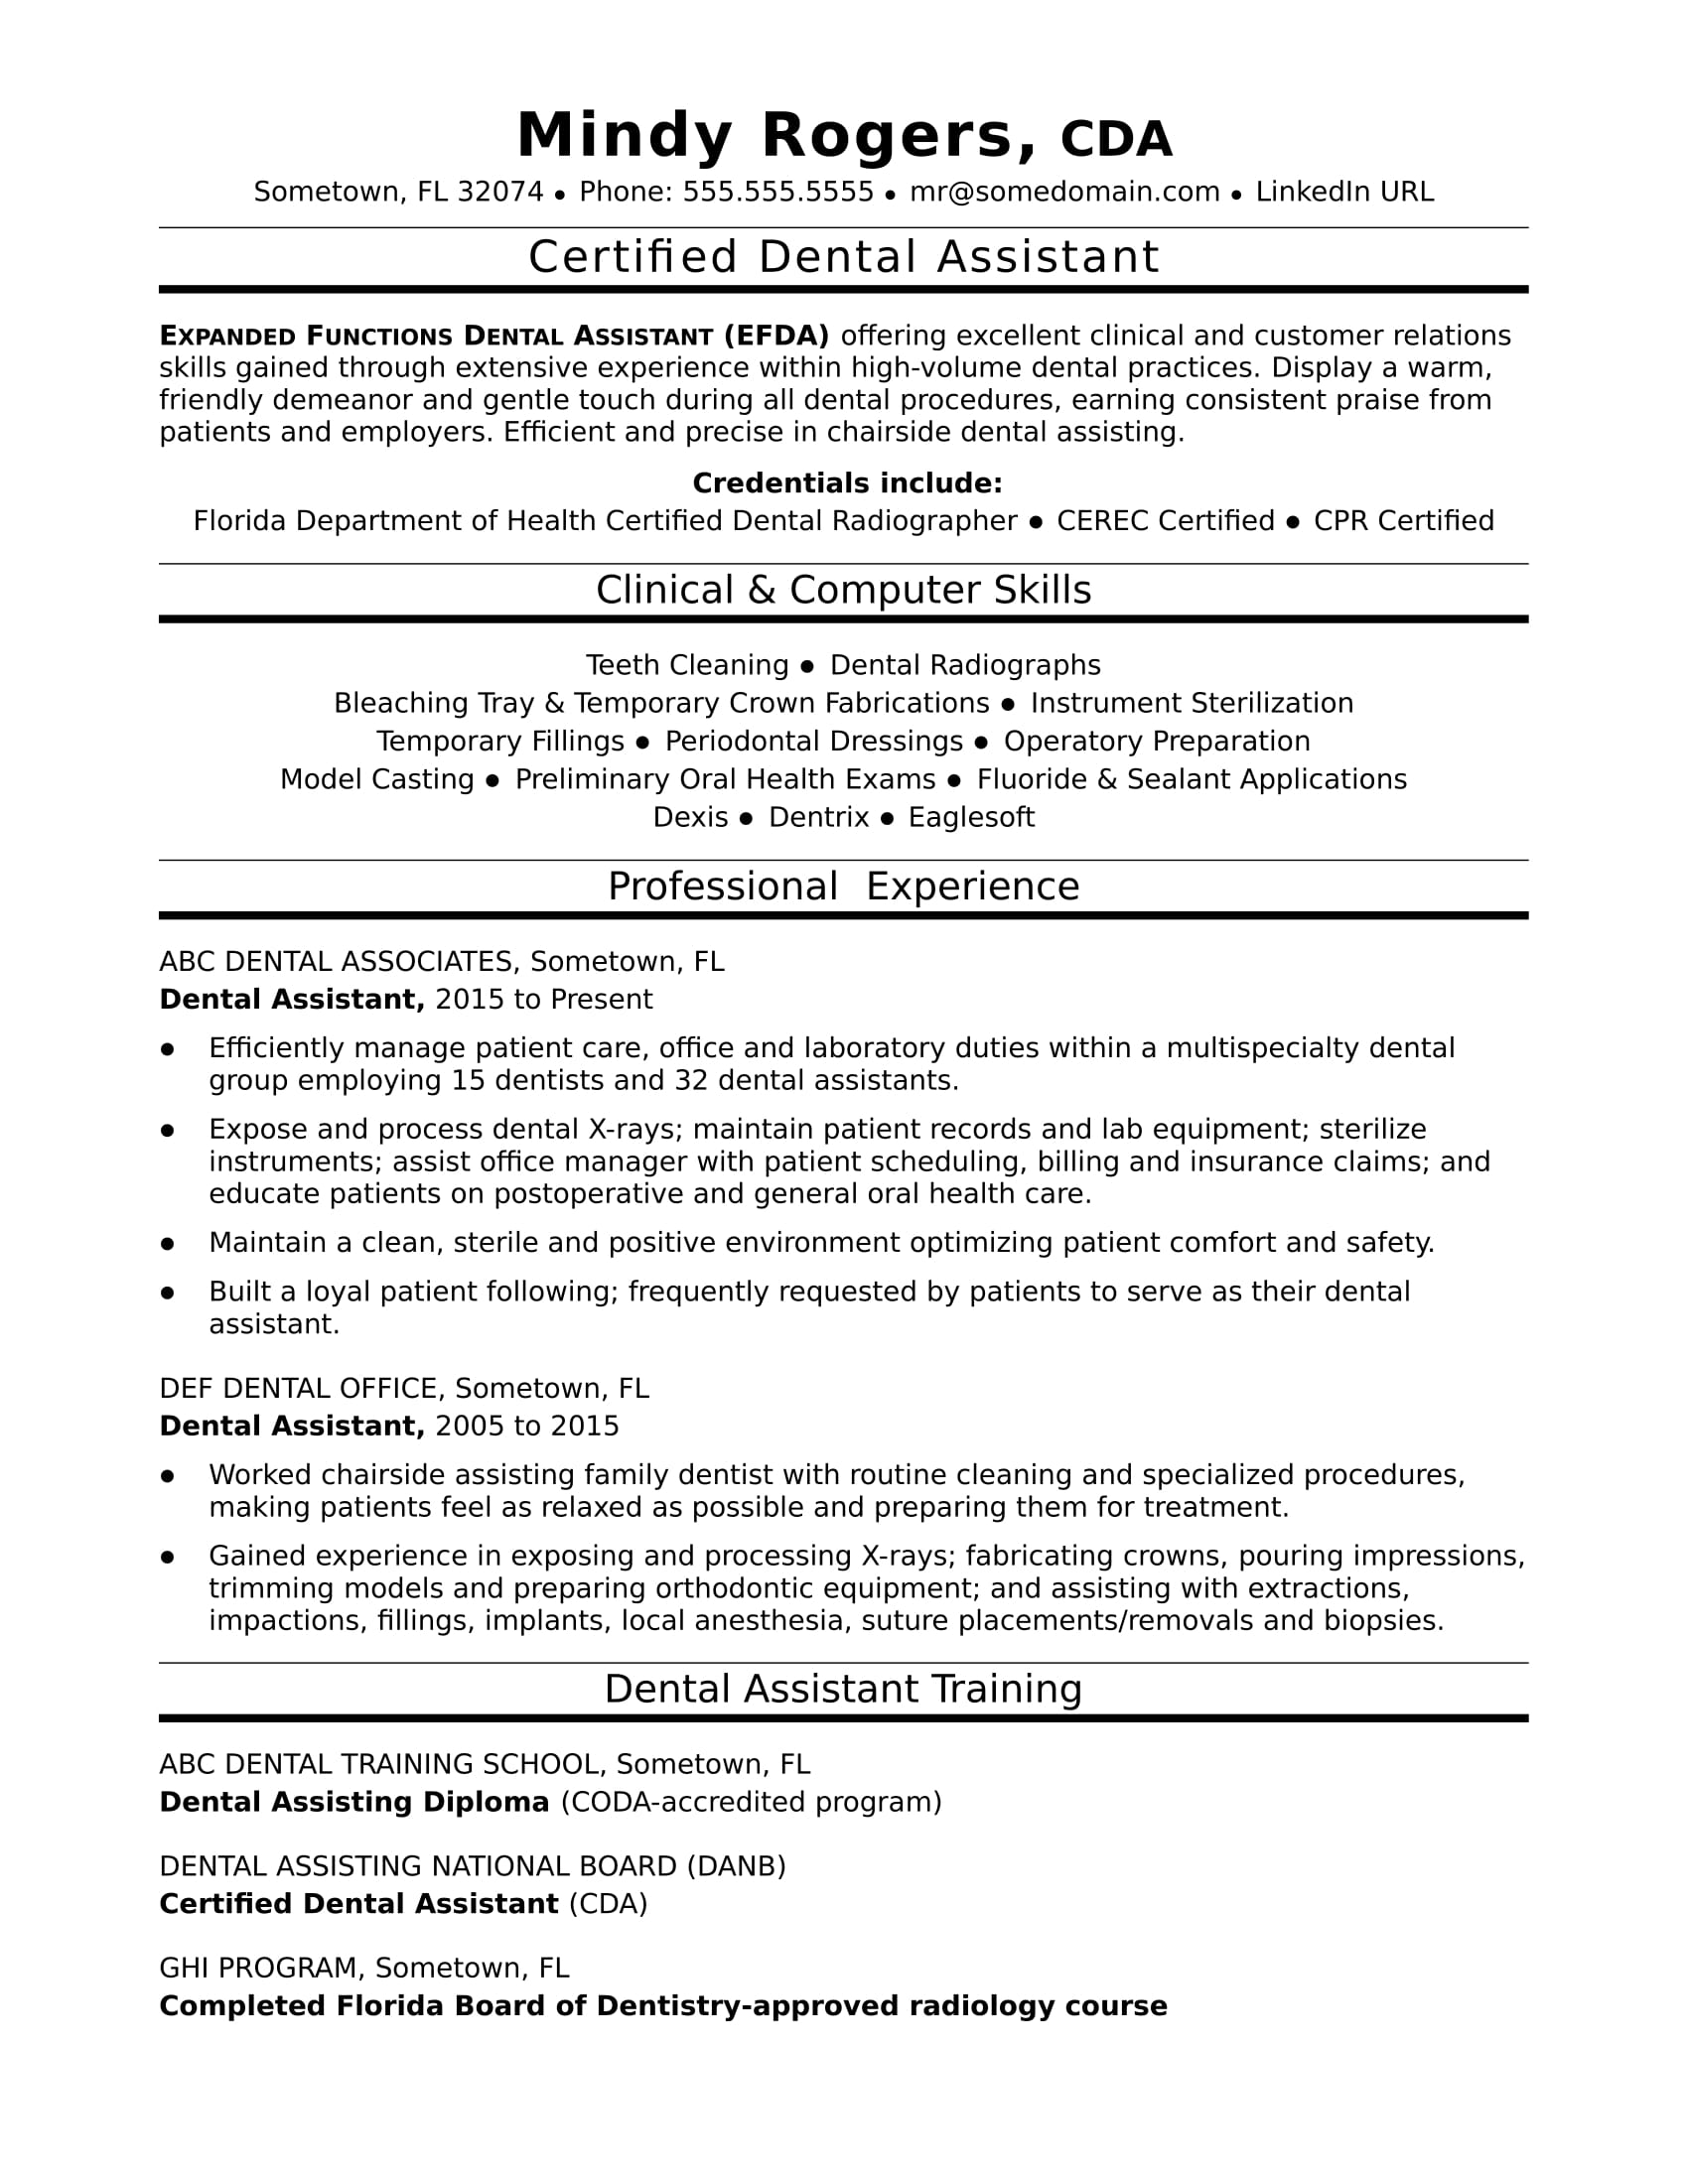 dental assistant resume sample - Dental Assistant Job Description For Resume